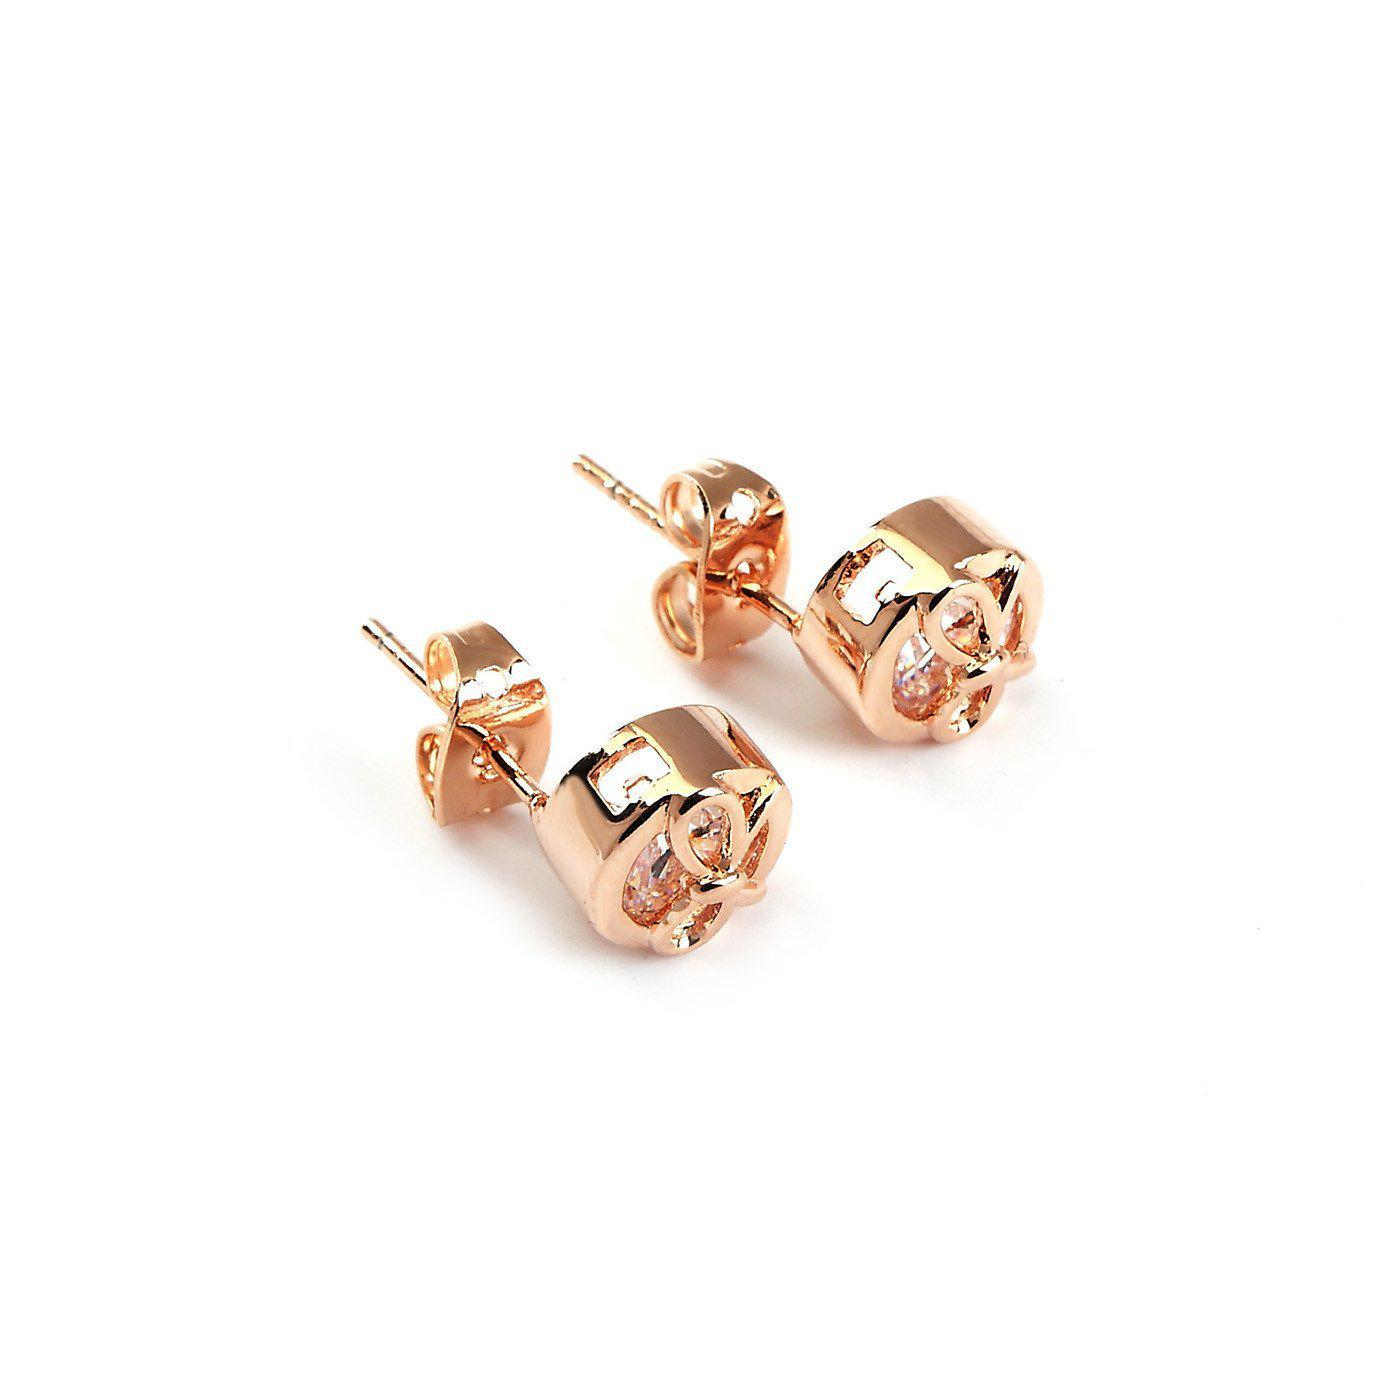 Elite Bow Solitaire Studs Earrings-Blinglane